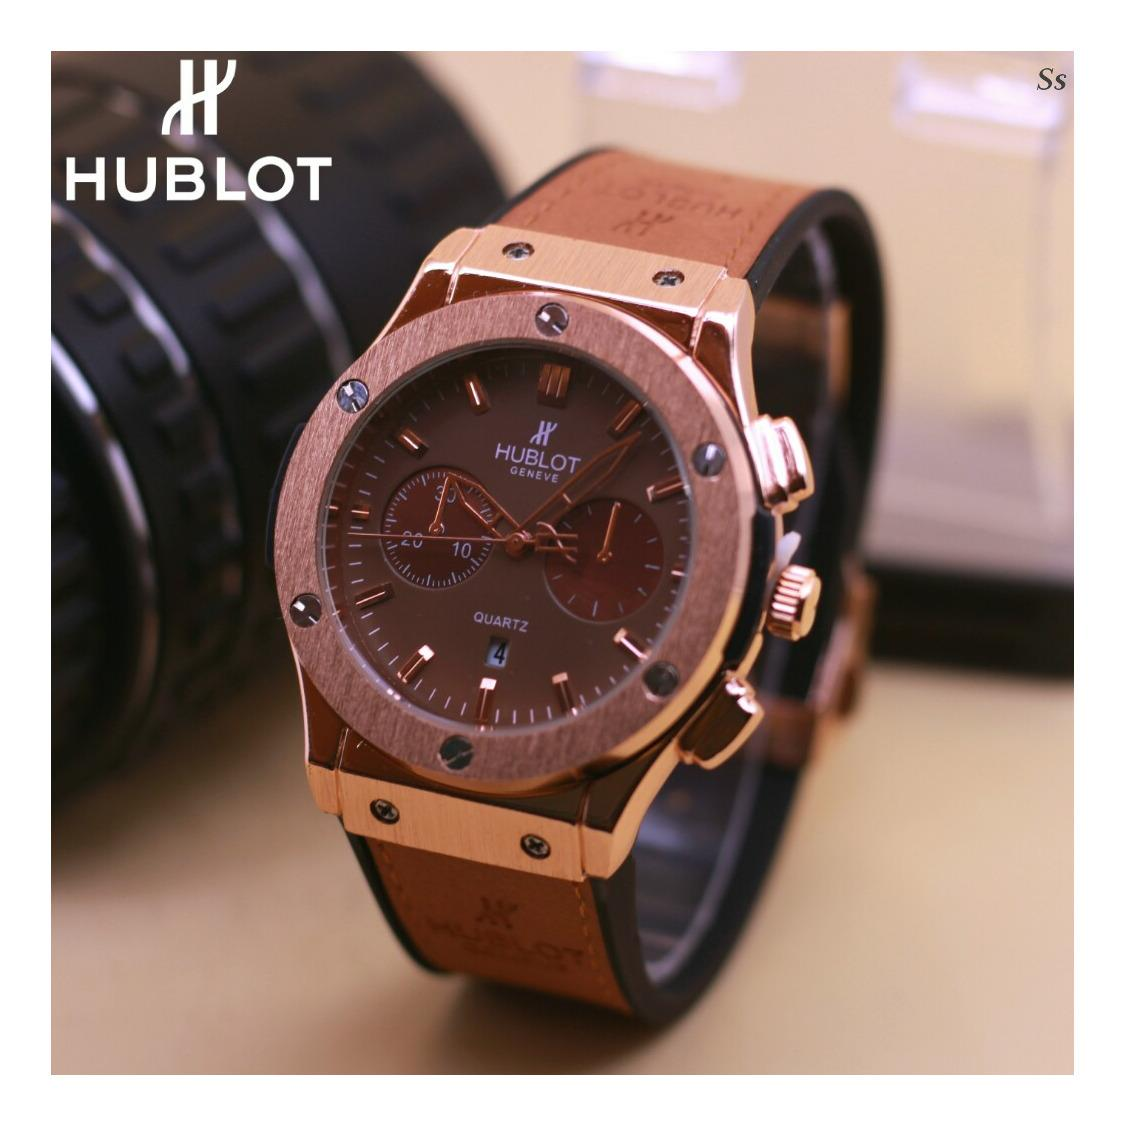 Jam tangan pria casual forma dan fashion Hublot - date on -rubber strap body stainless